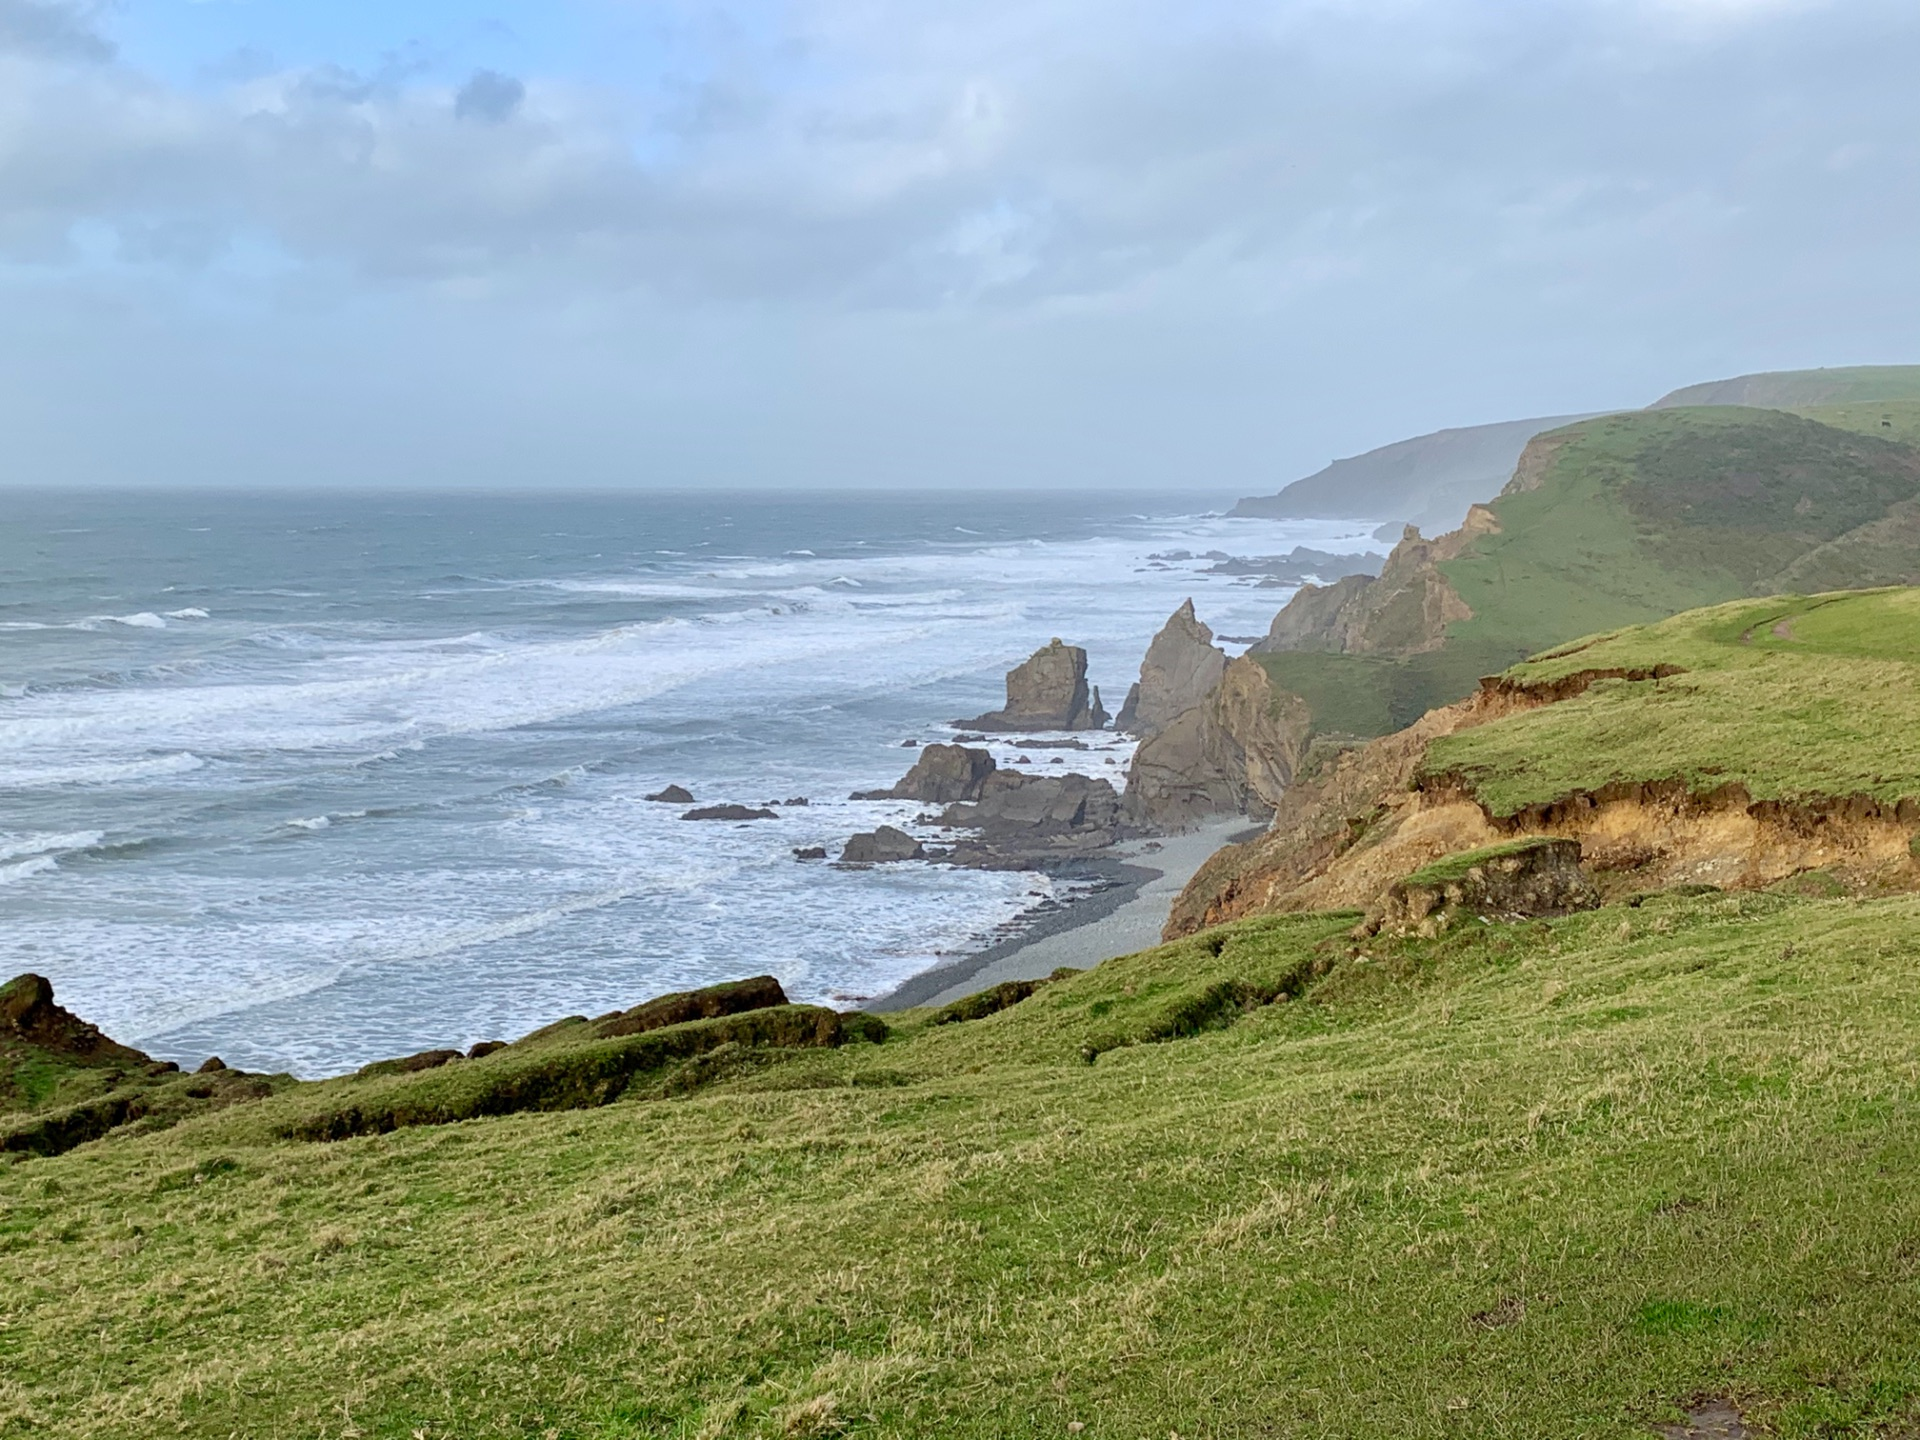 Stunning scenery on this amazing section of The South West Coast Path from Morwenstow to Bude